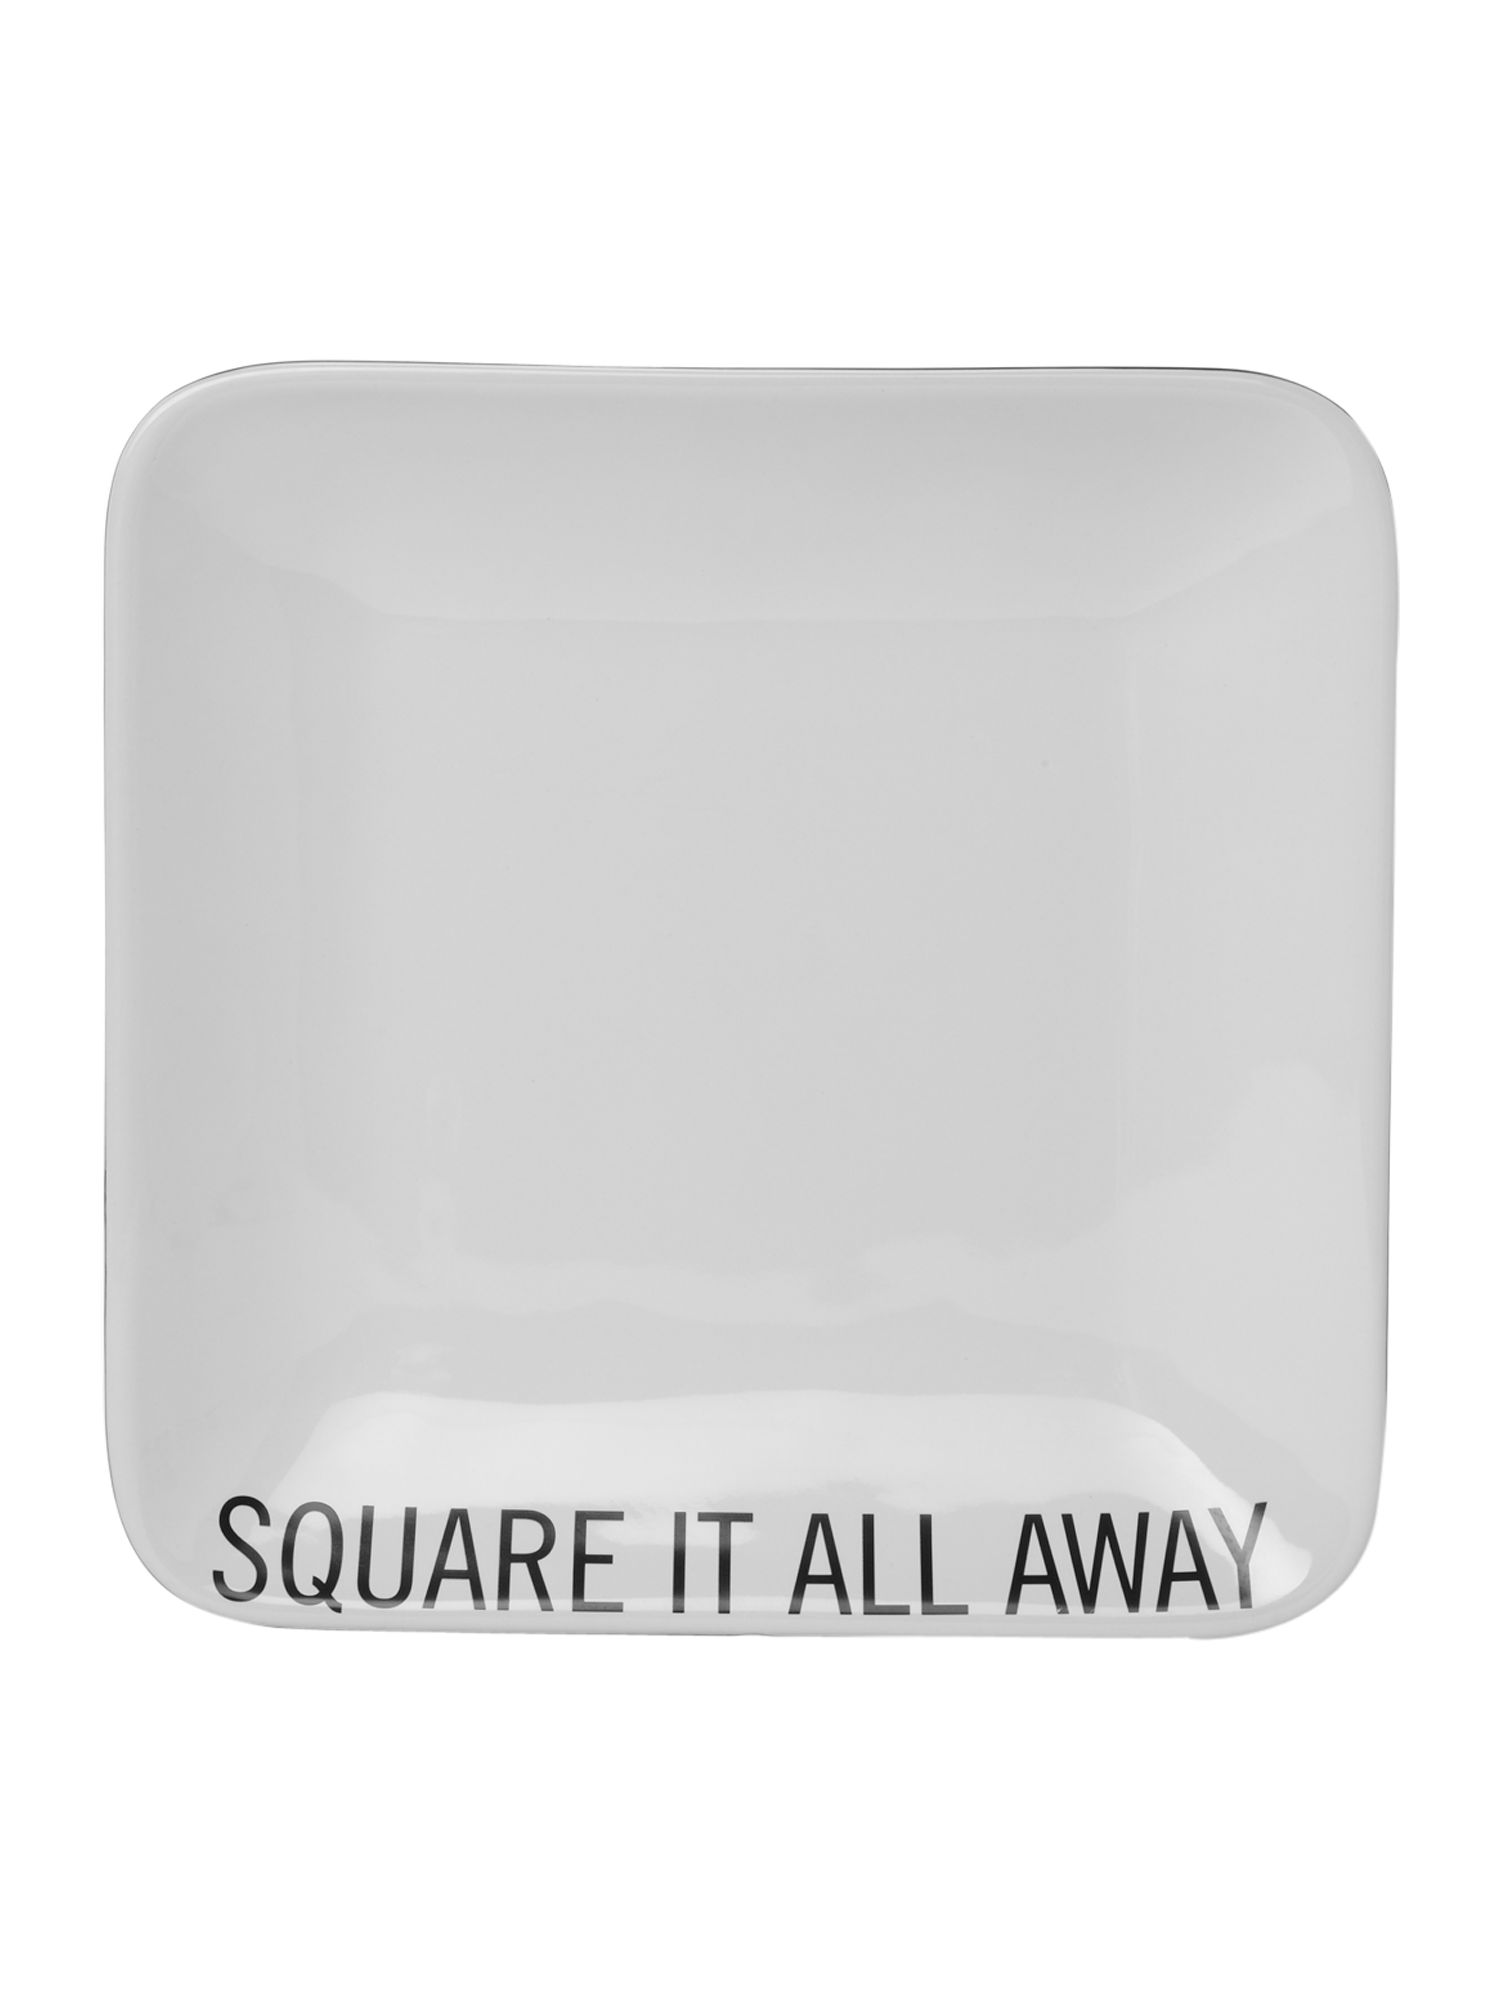 Text square it all away square plate